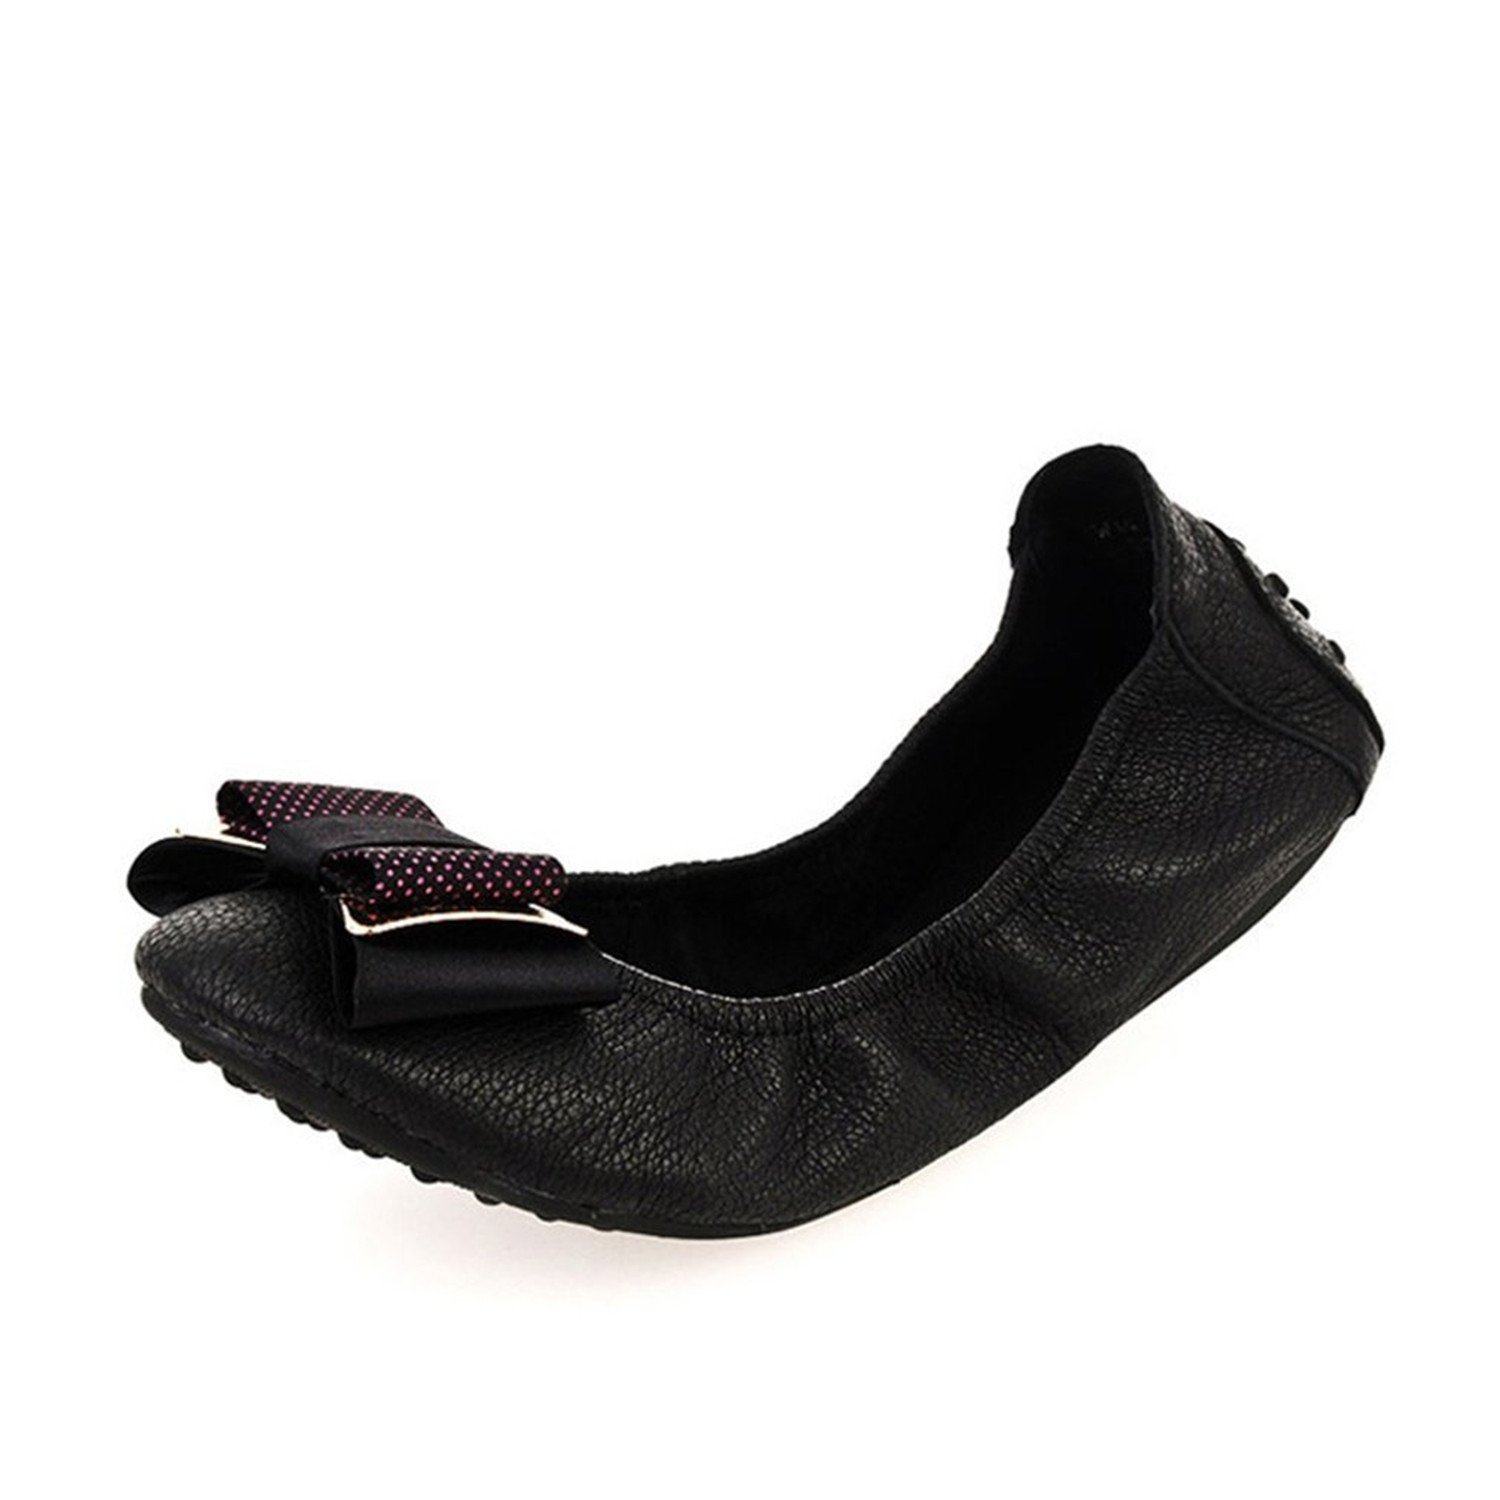 Also Easy Stylish Womens Soft Bow Leather Fashion Ballet Flats Black6.5 B US Unique Style M